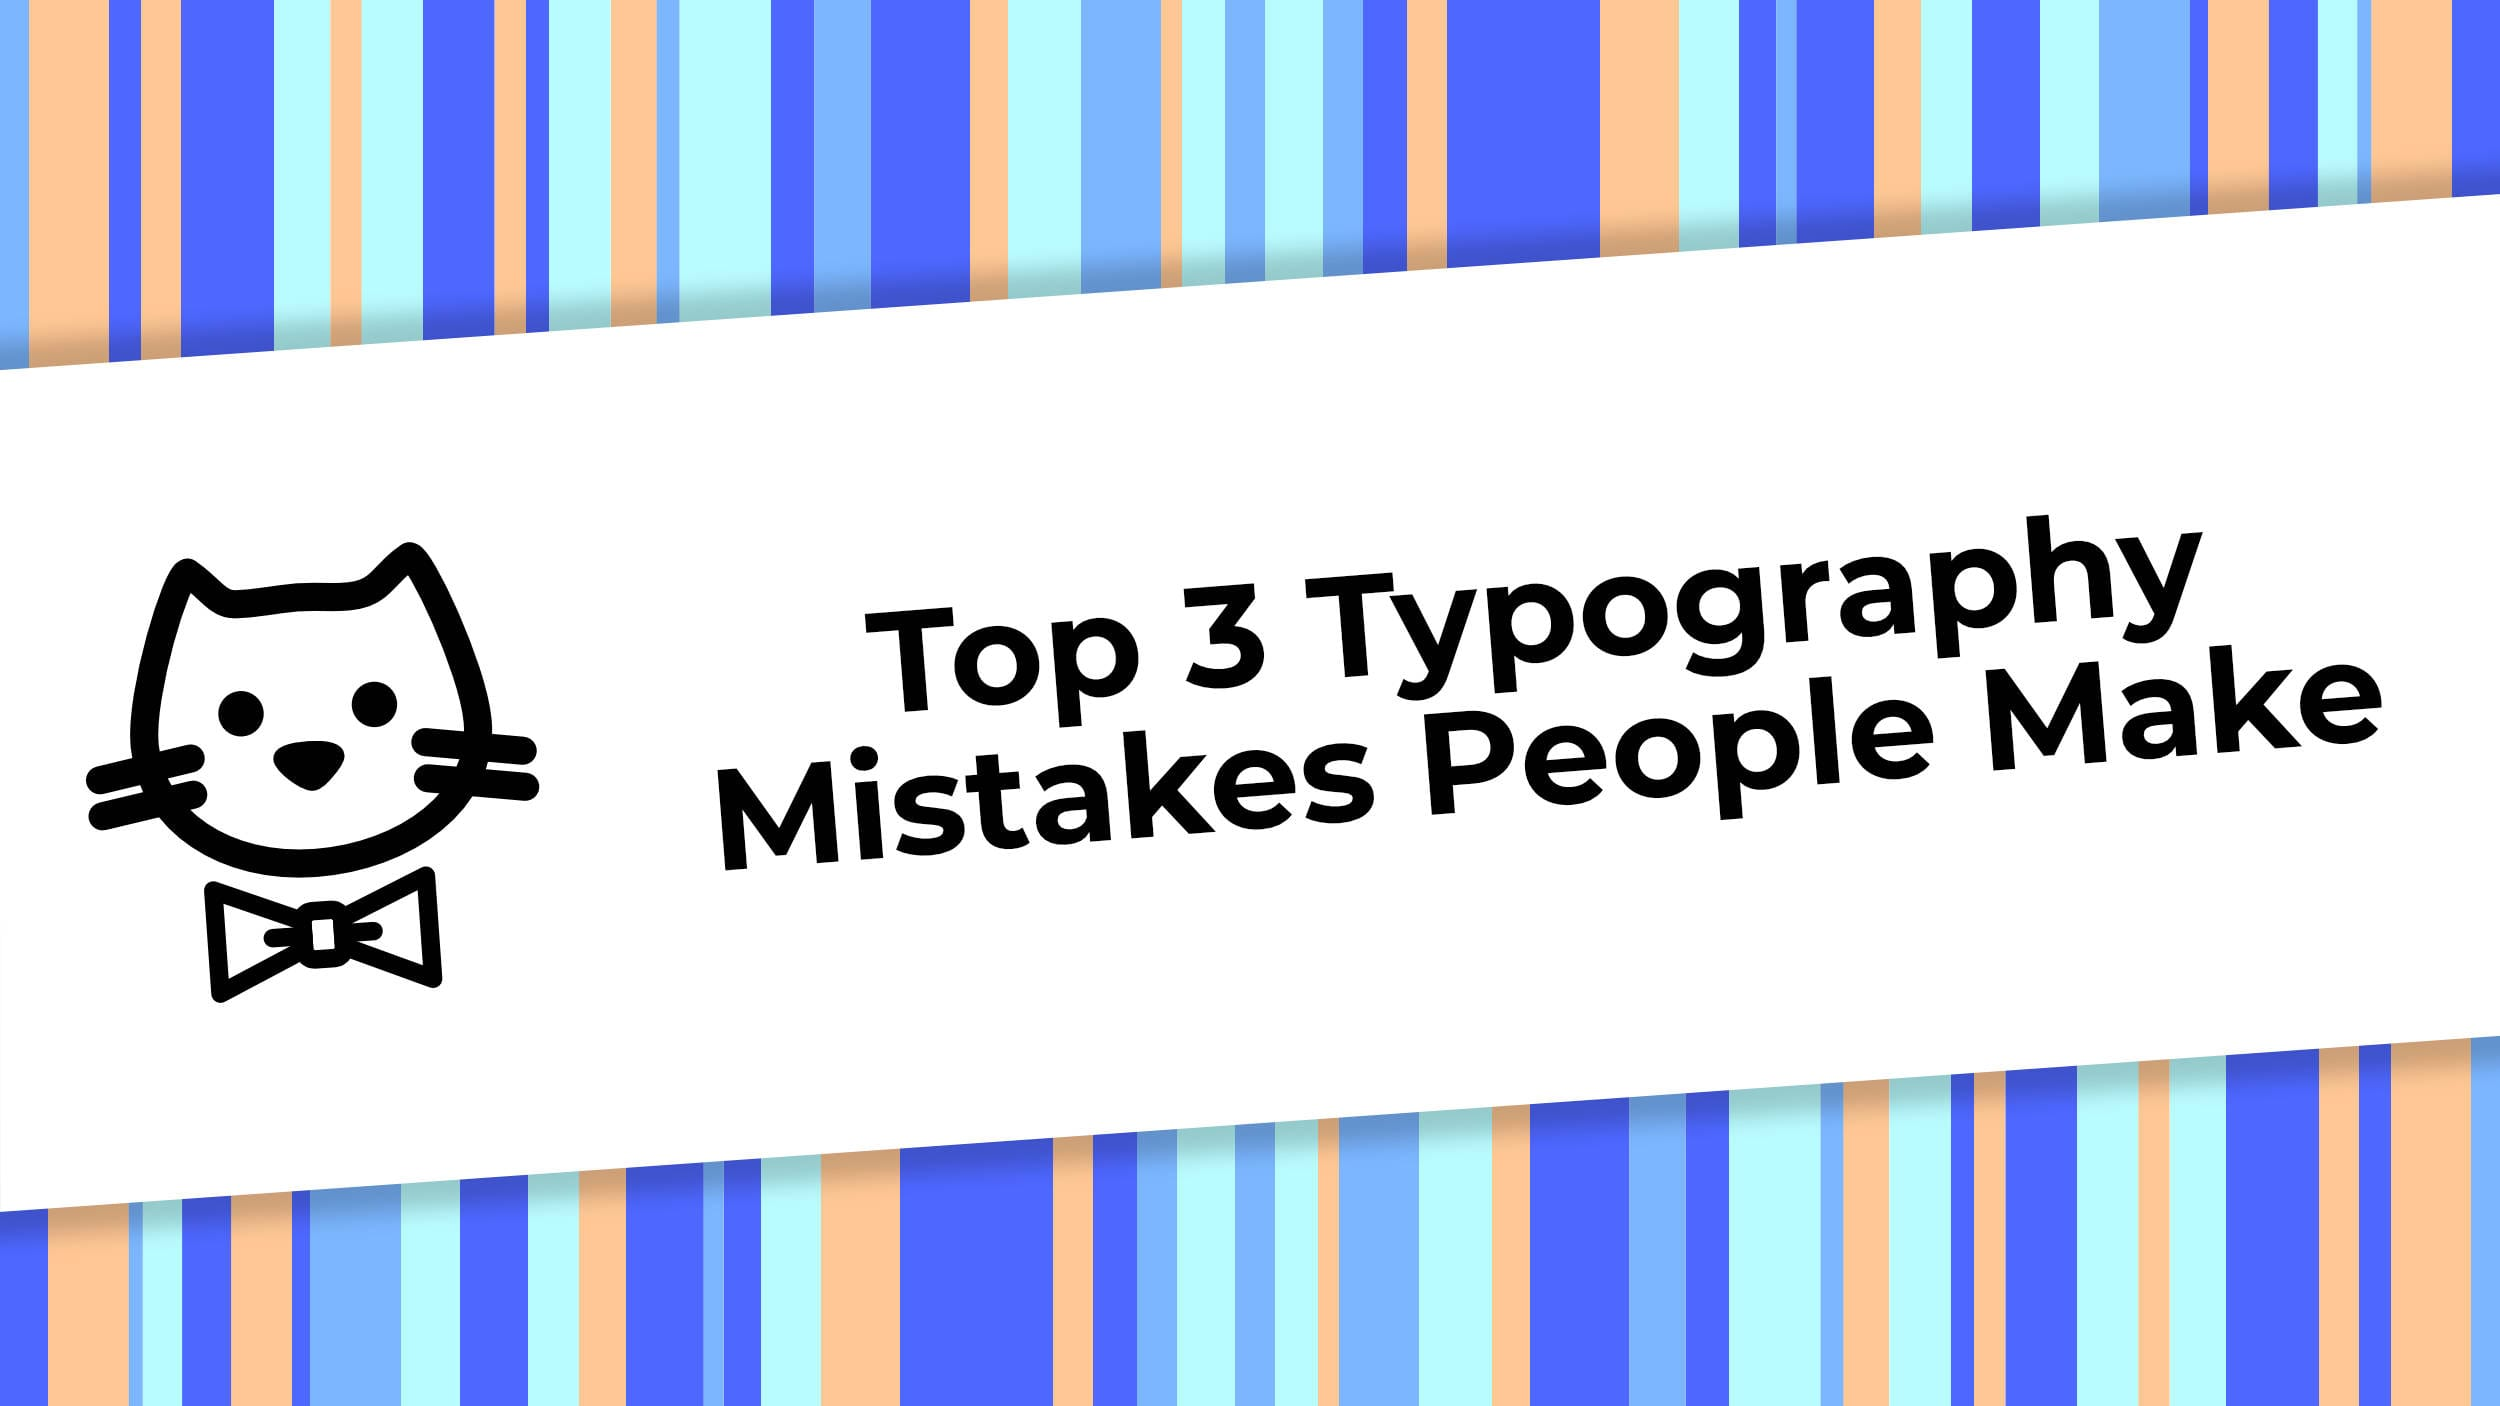 Top 3 Typography Mistakes People Make.jpg